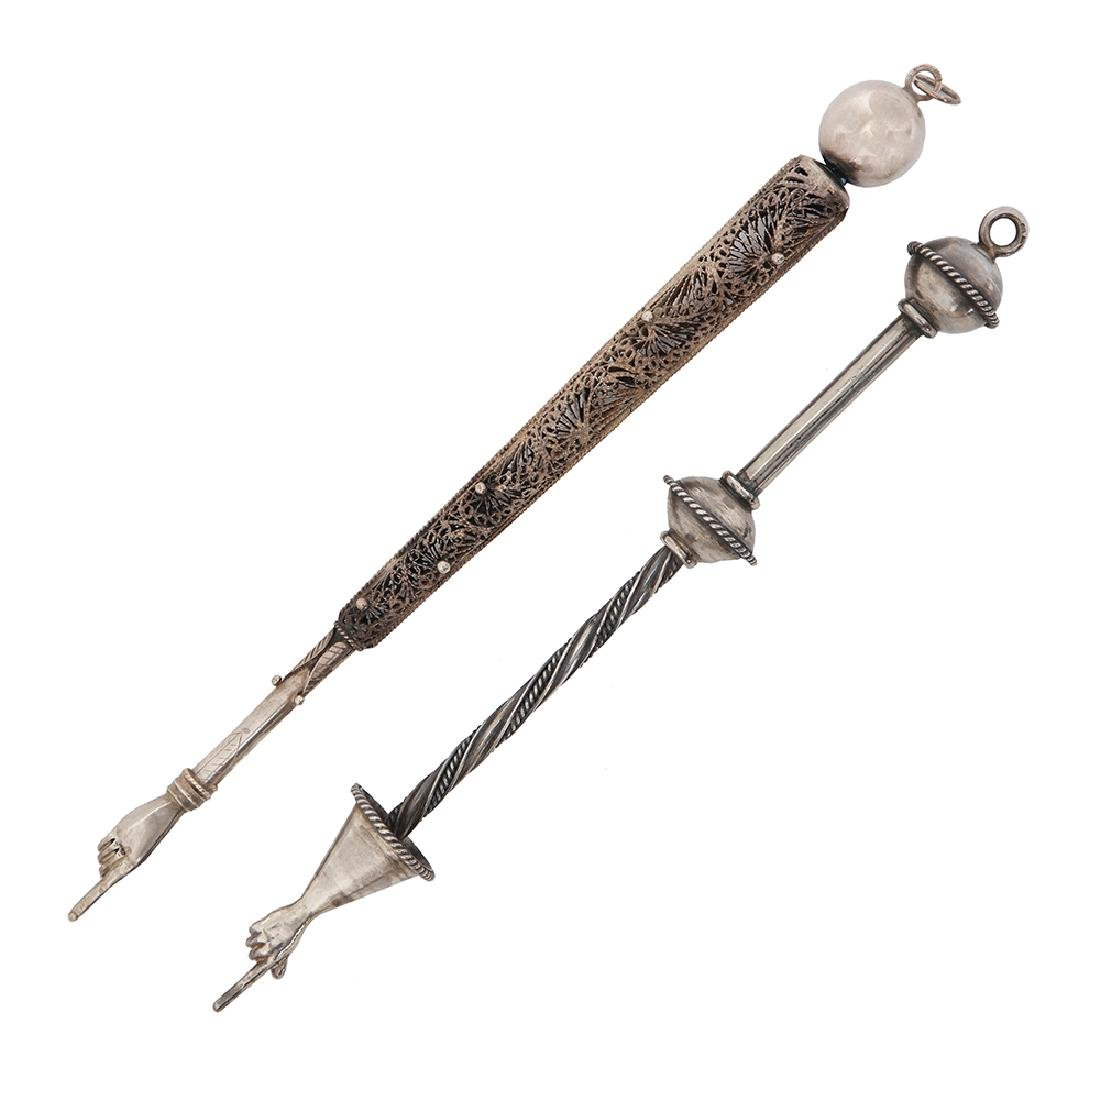 TWO SILVER AND SILVER AND FILIGREE TORAH POINTERS